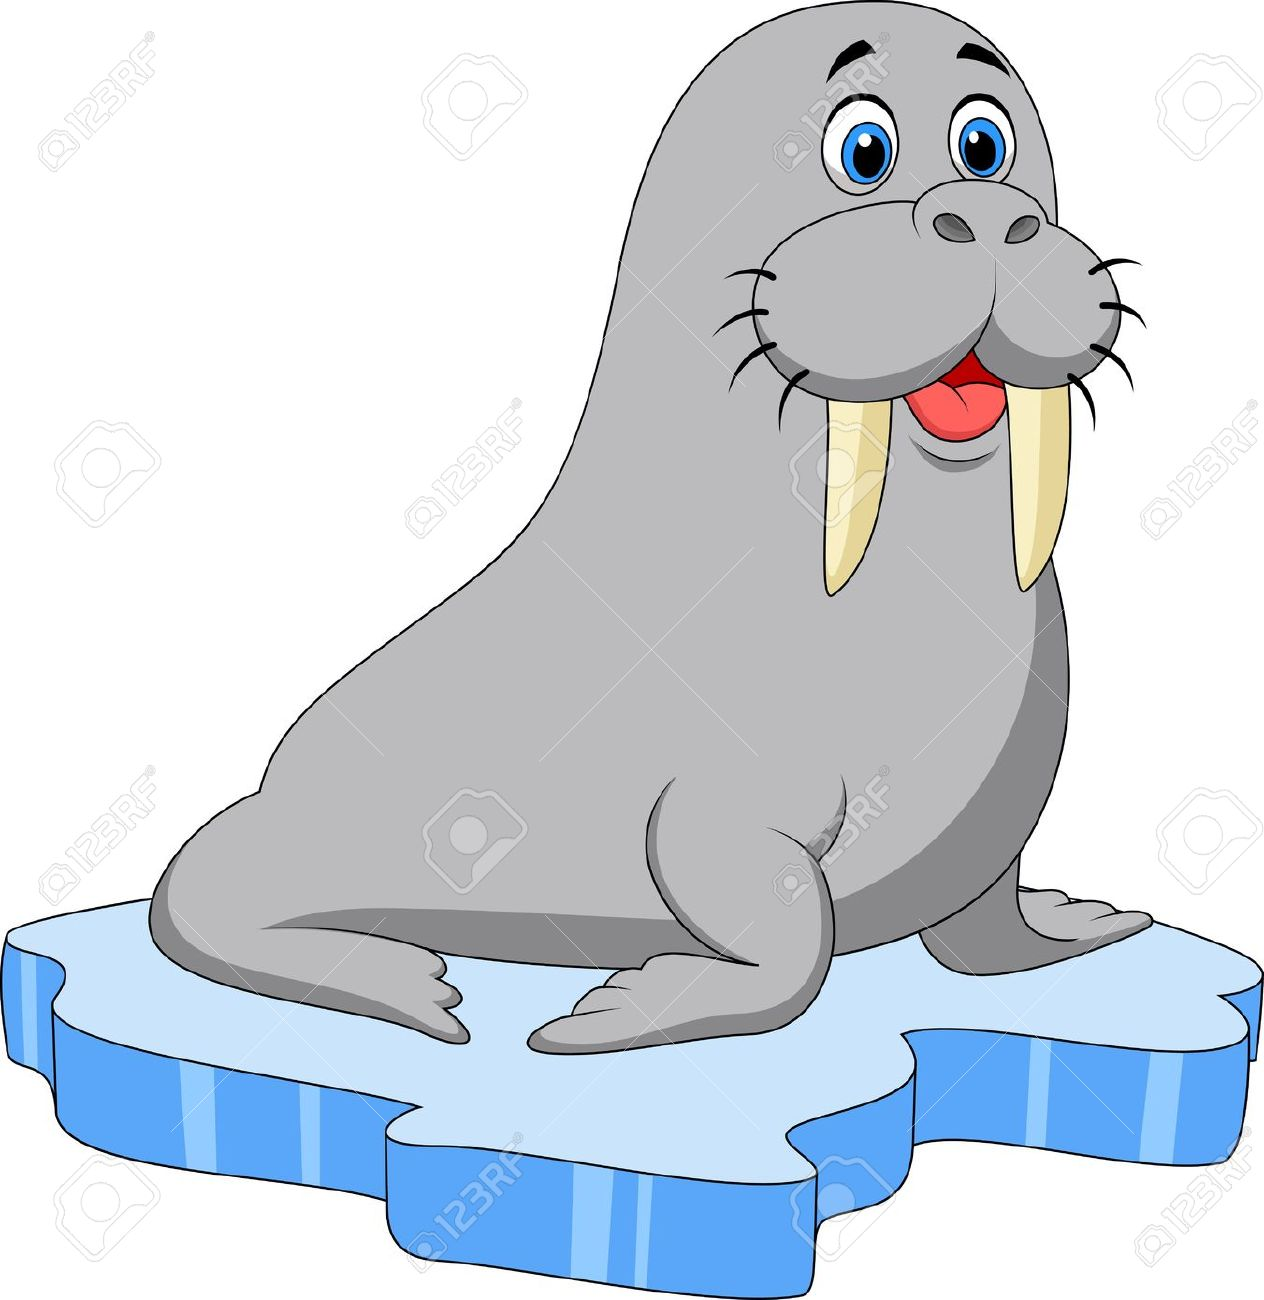 walrus: Cute walrus cartoon on | Clipart Panda - Free ...